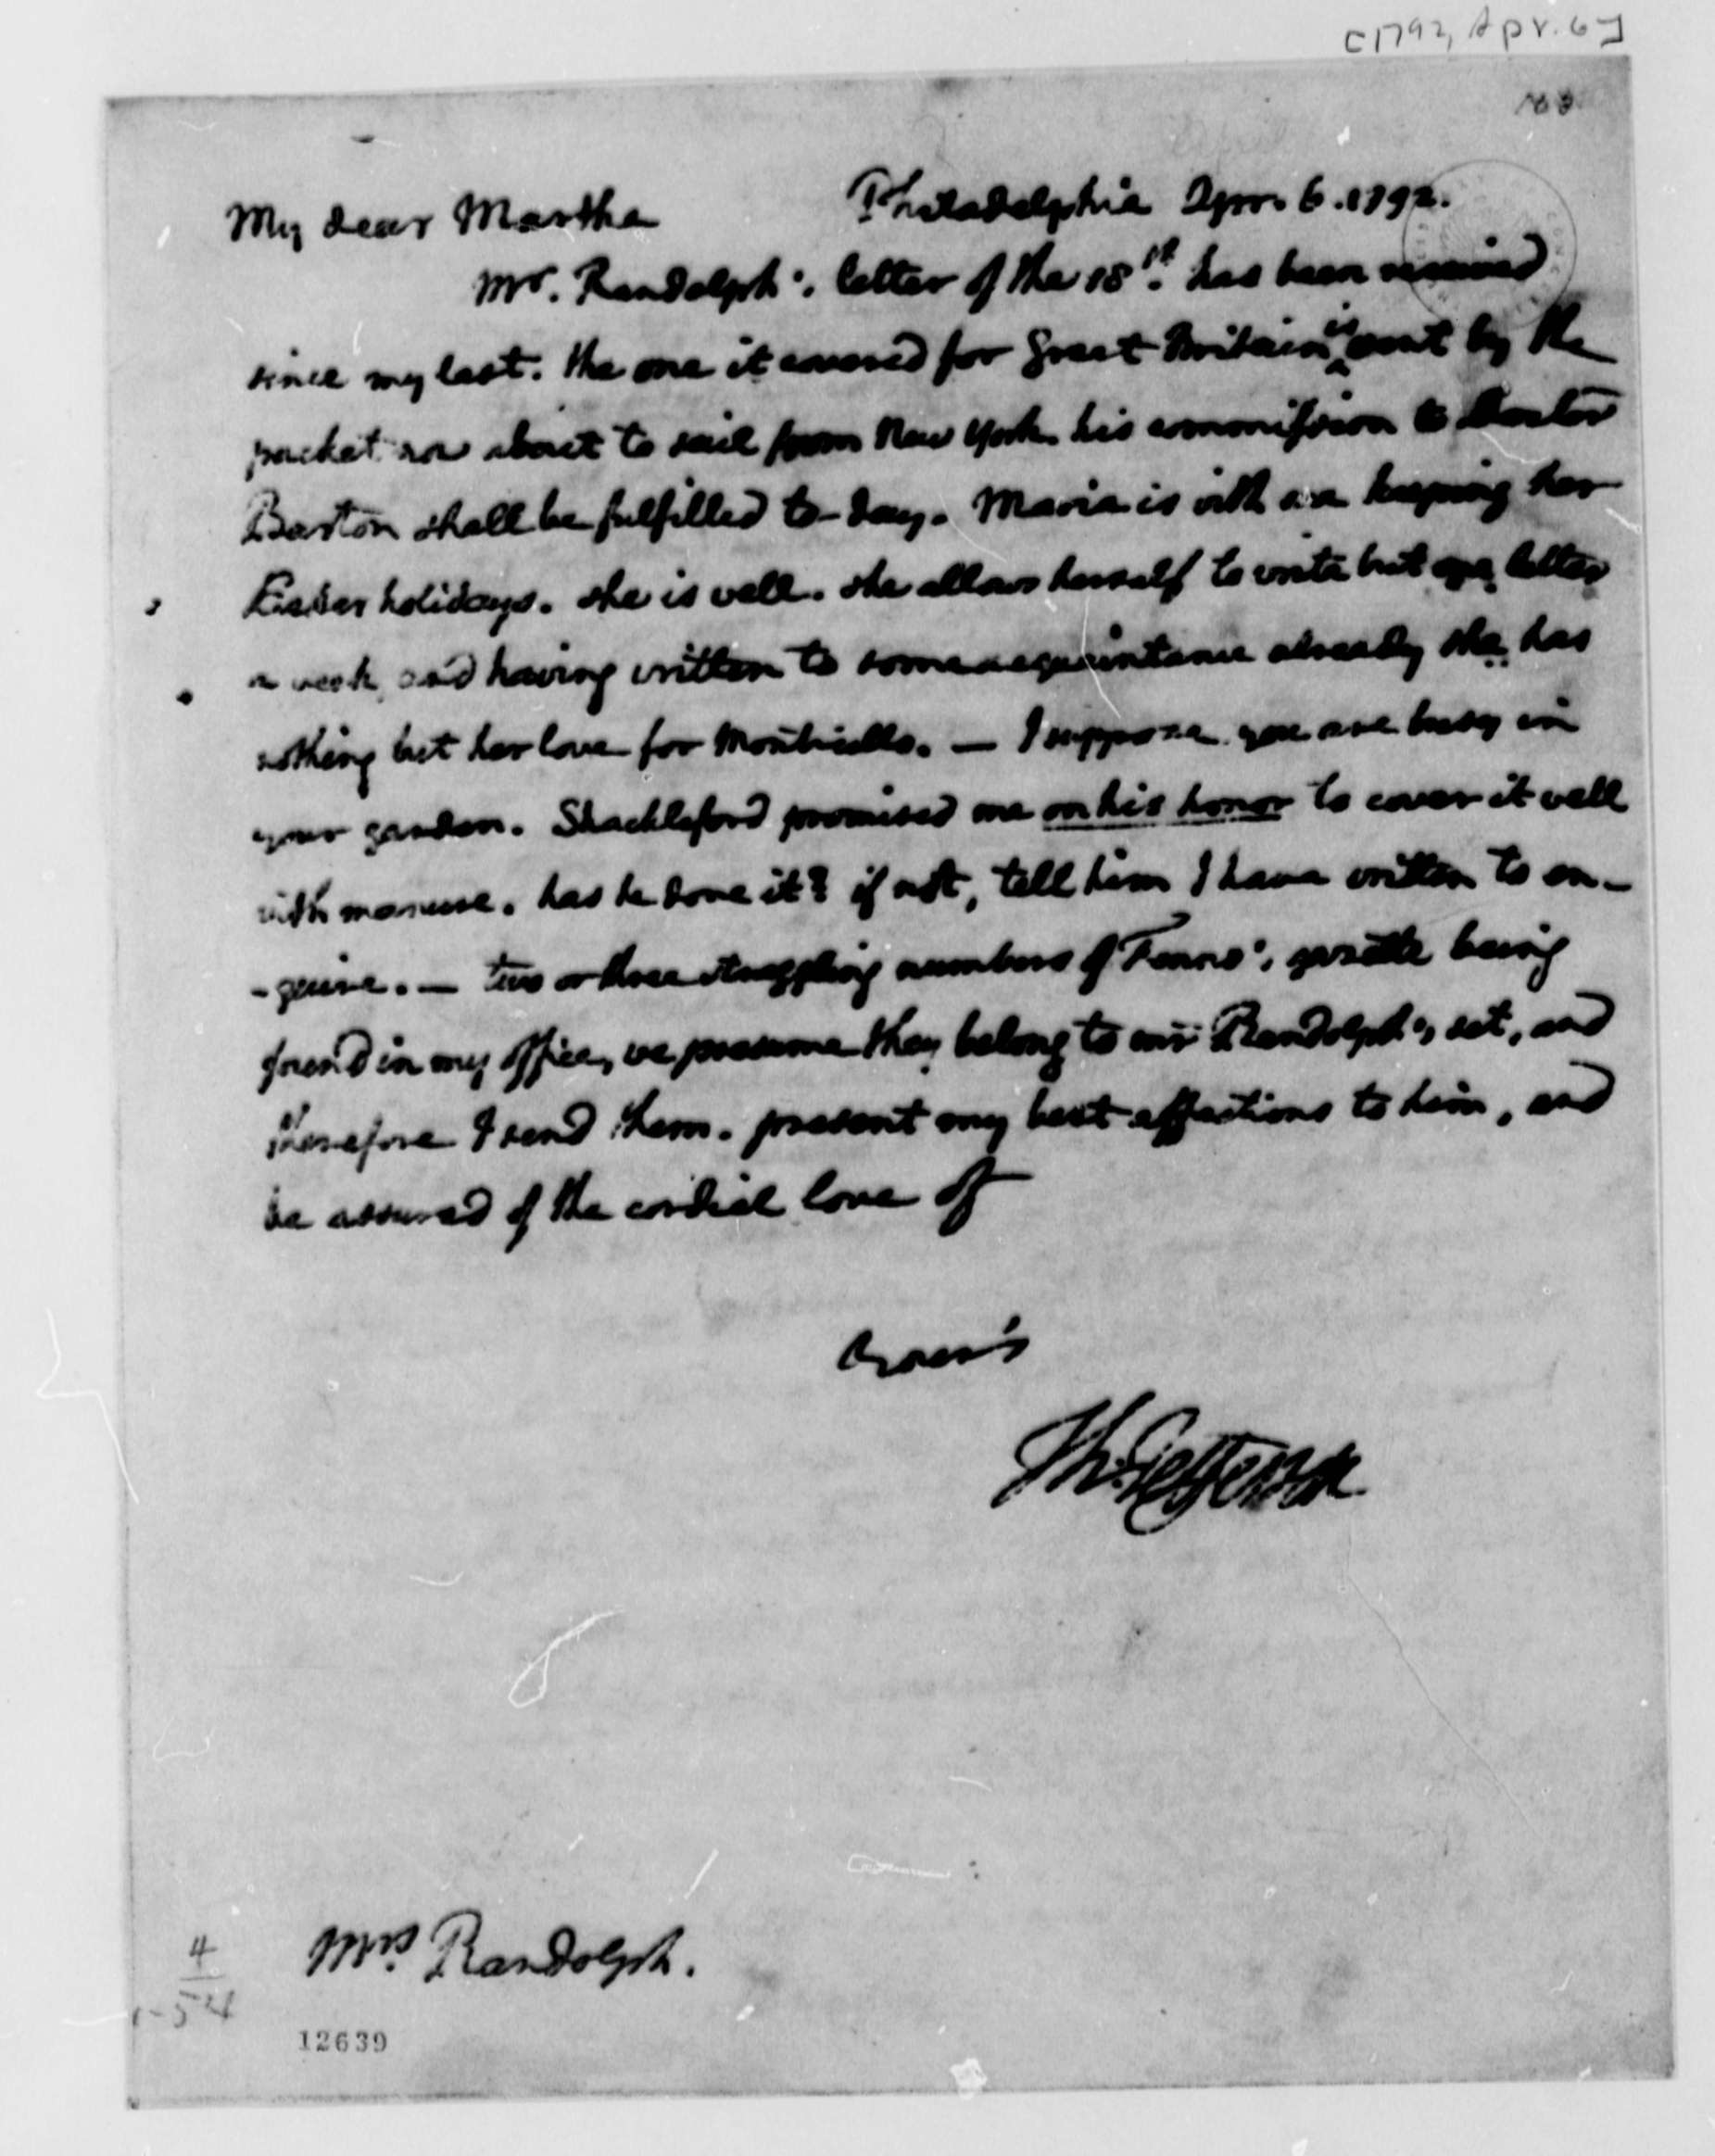 thomas jefferson louisiana purchase essay Thomas jefferson and the louisiana purchase introduction the purchase of louisiana from france is one of the major sizeable events that make thomas jefferson to stand out in the history of the united states.